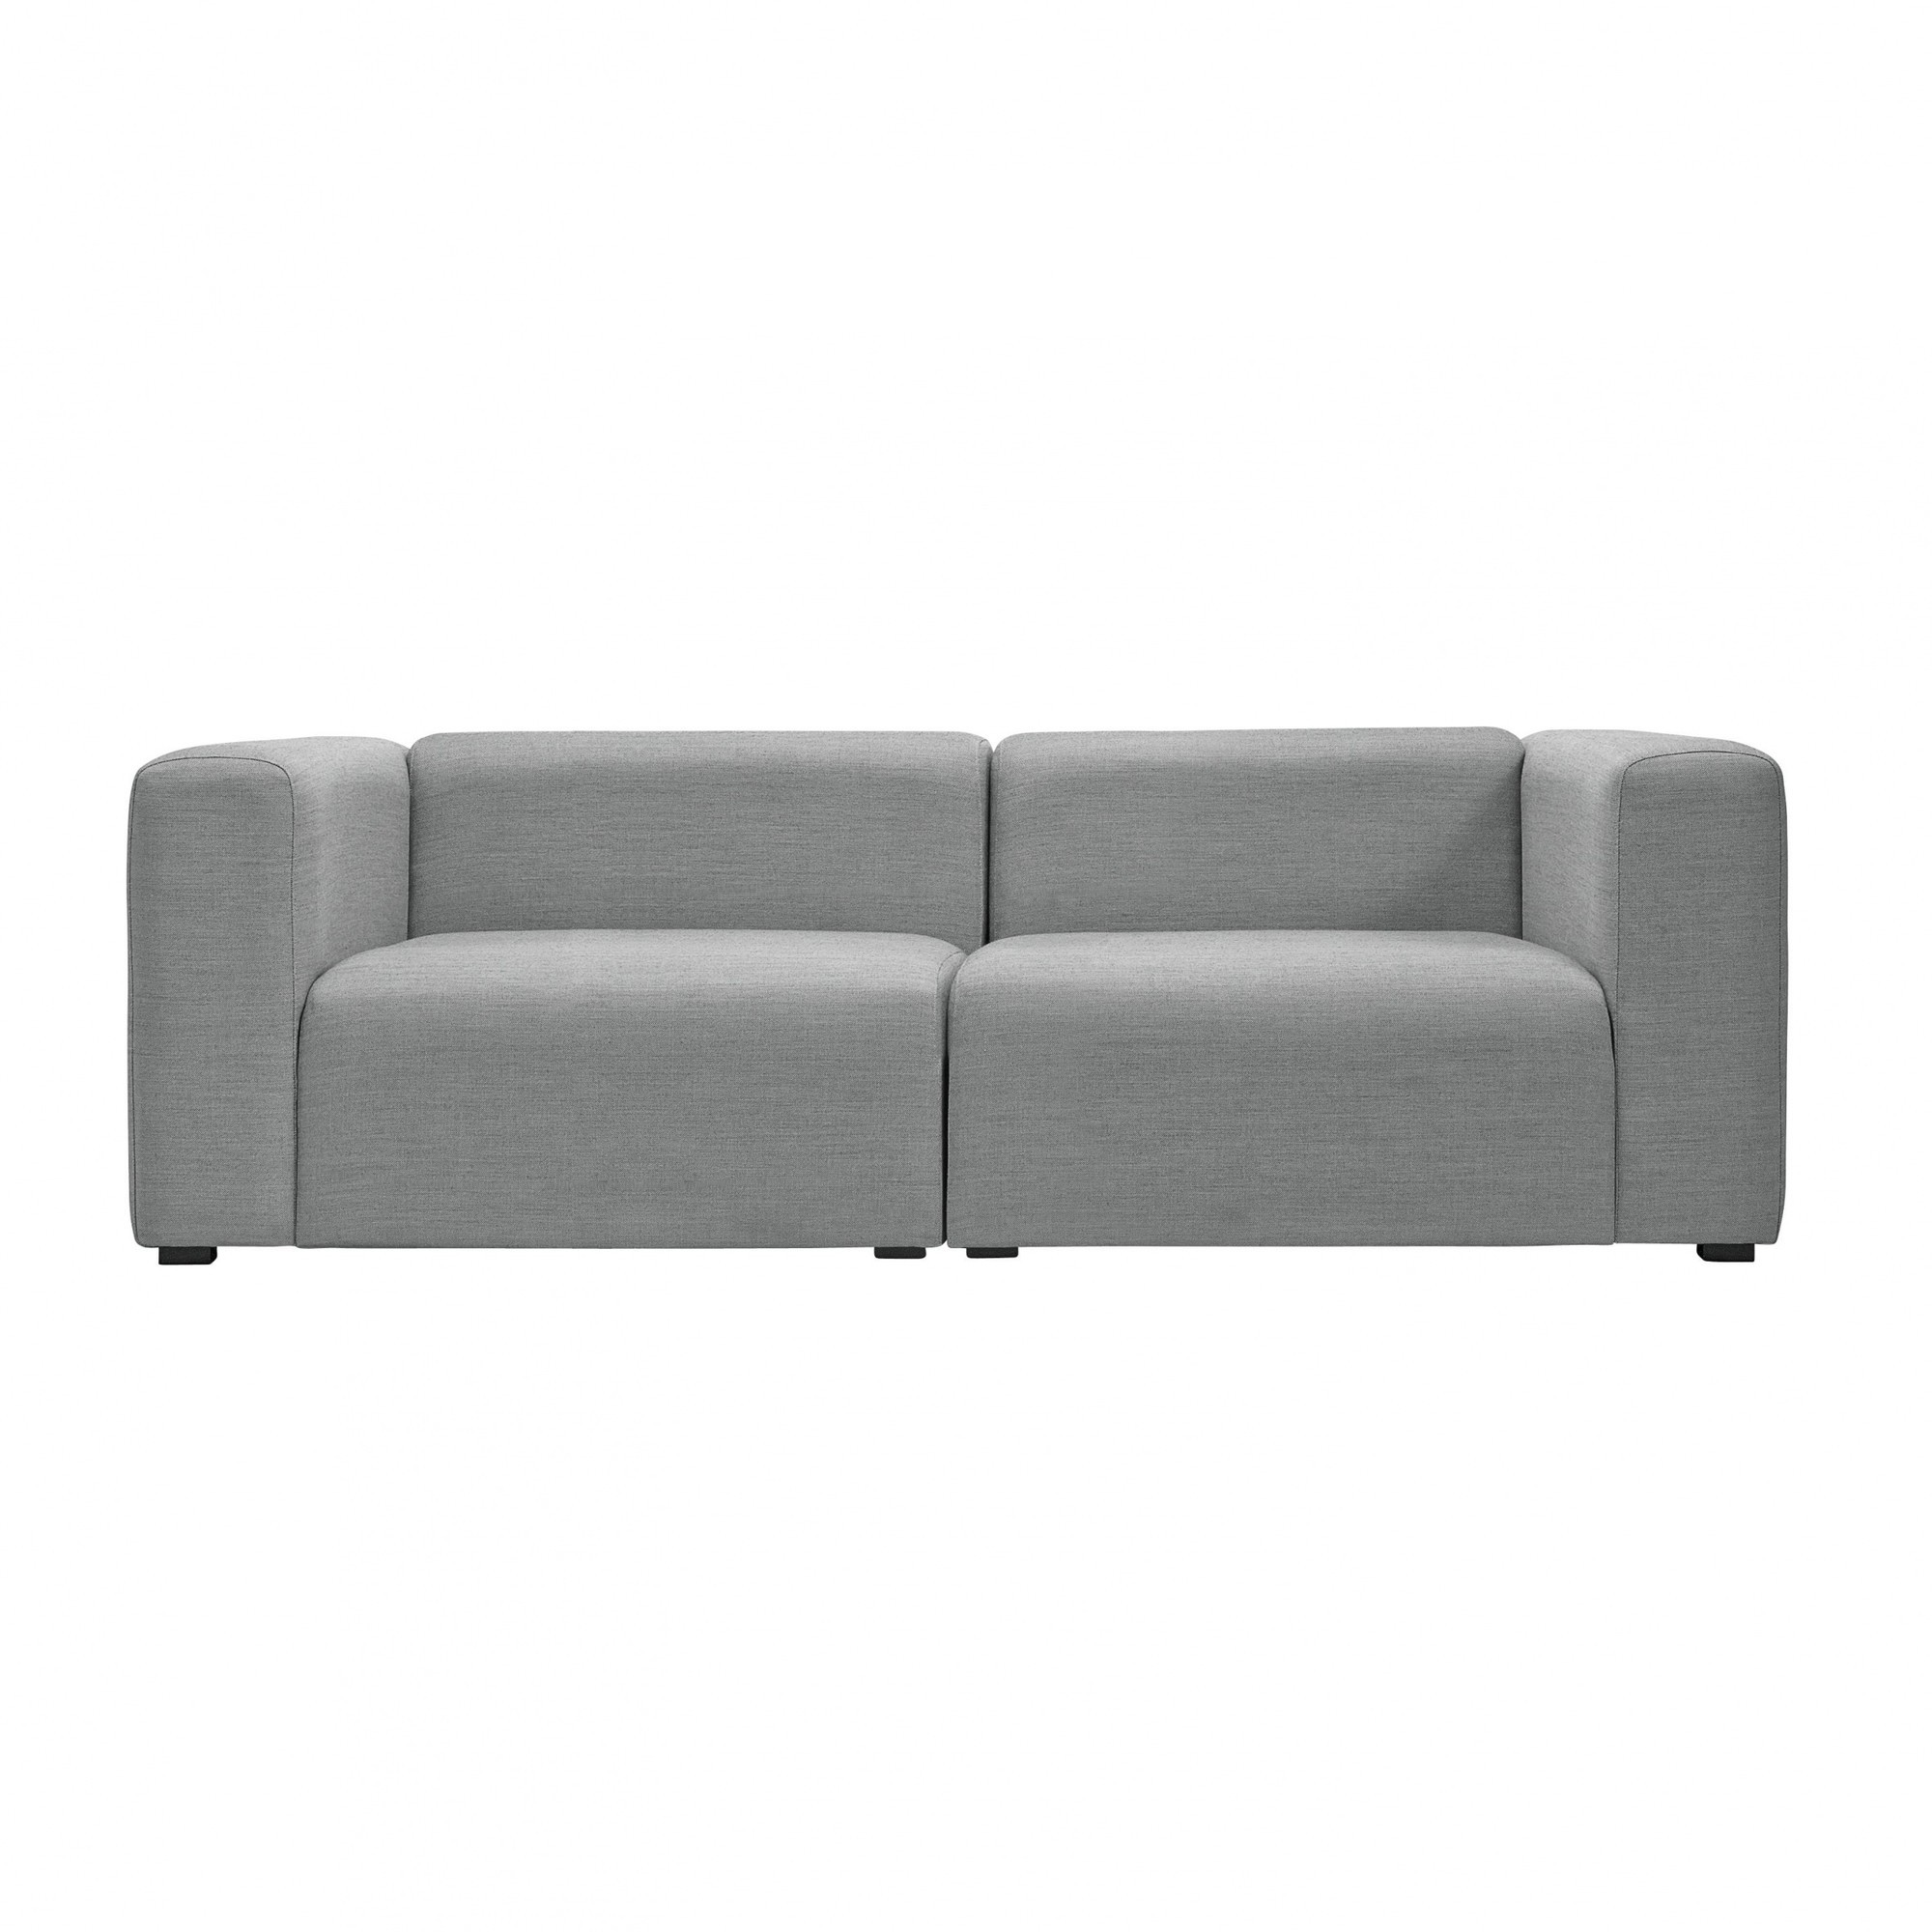 2 5 Sitzer Sofa Mags 2 5 Seater Sofa Fabric Surface